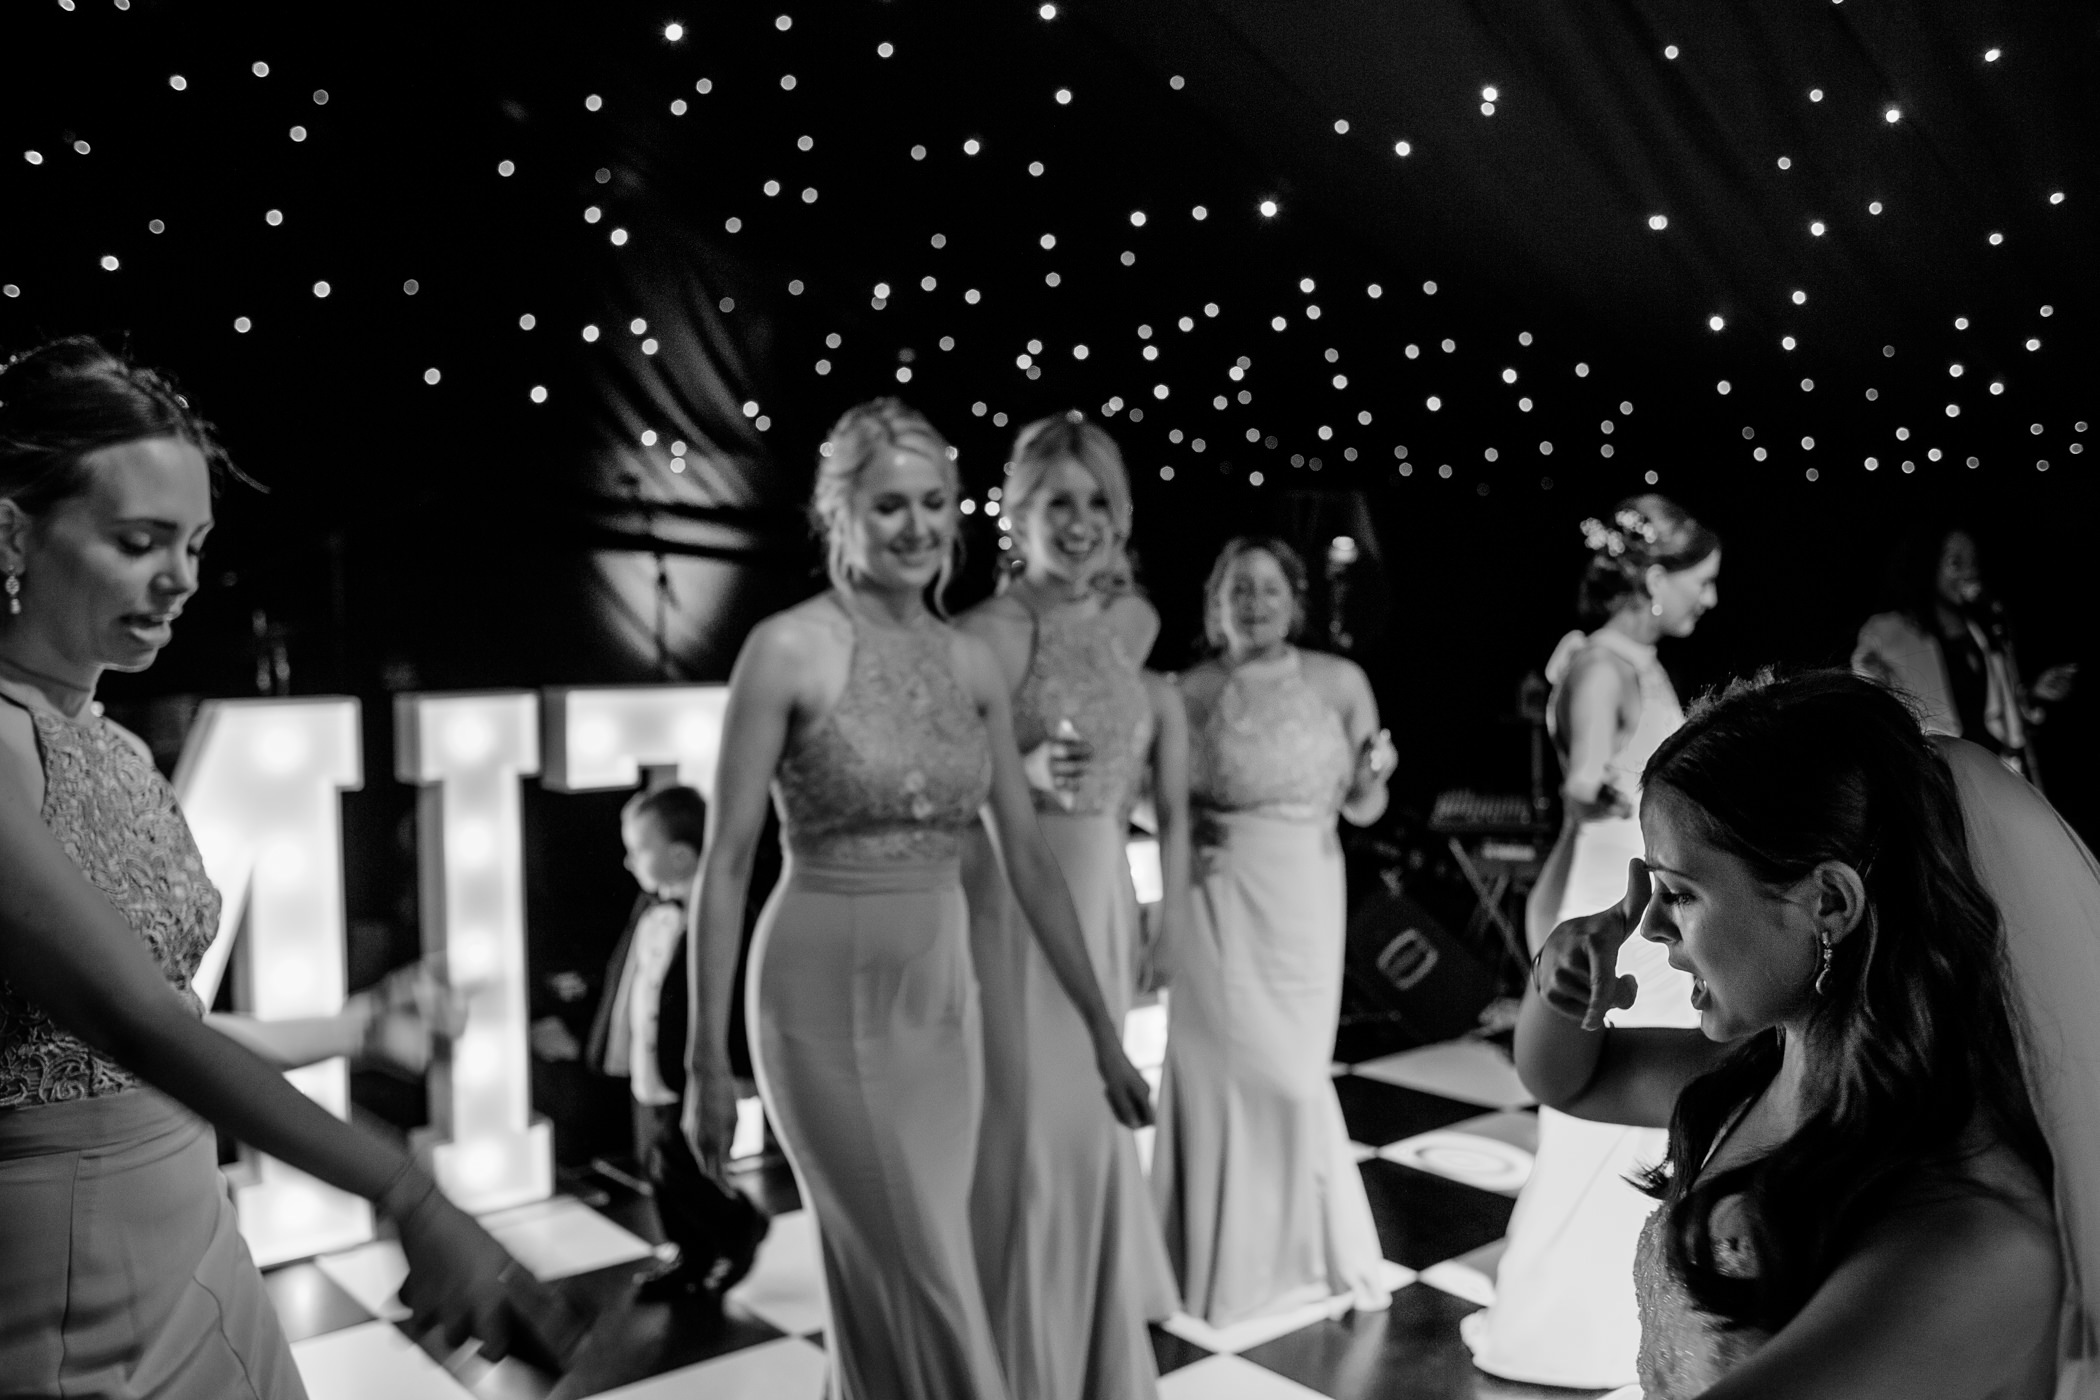 sansom-photography-becky-david-cheshire-wedding-51